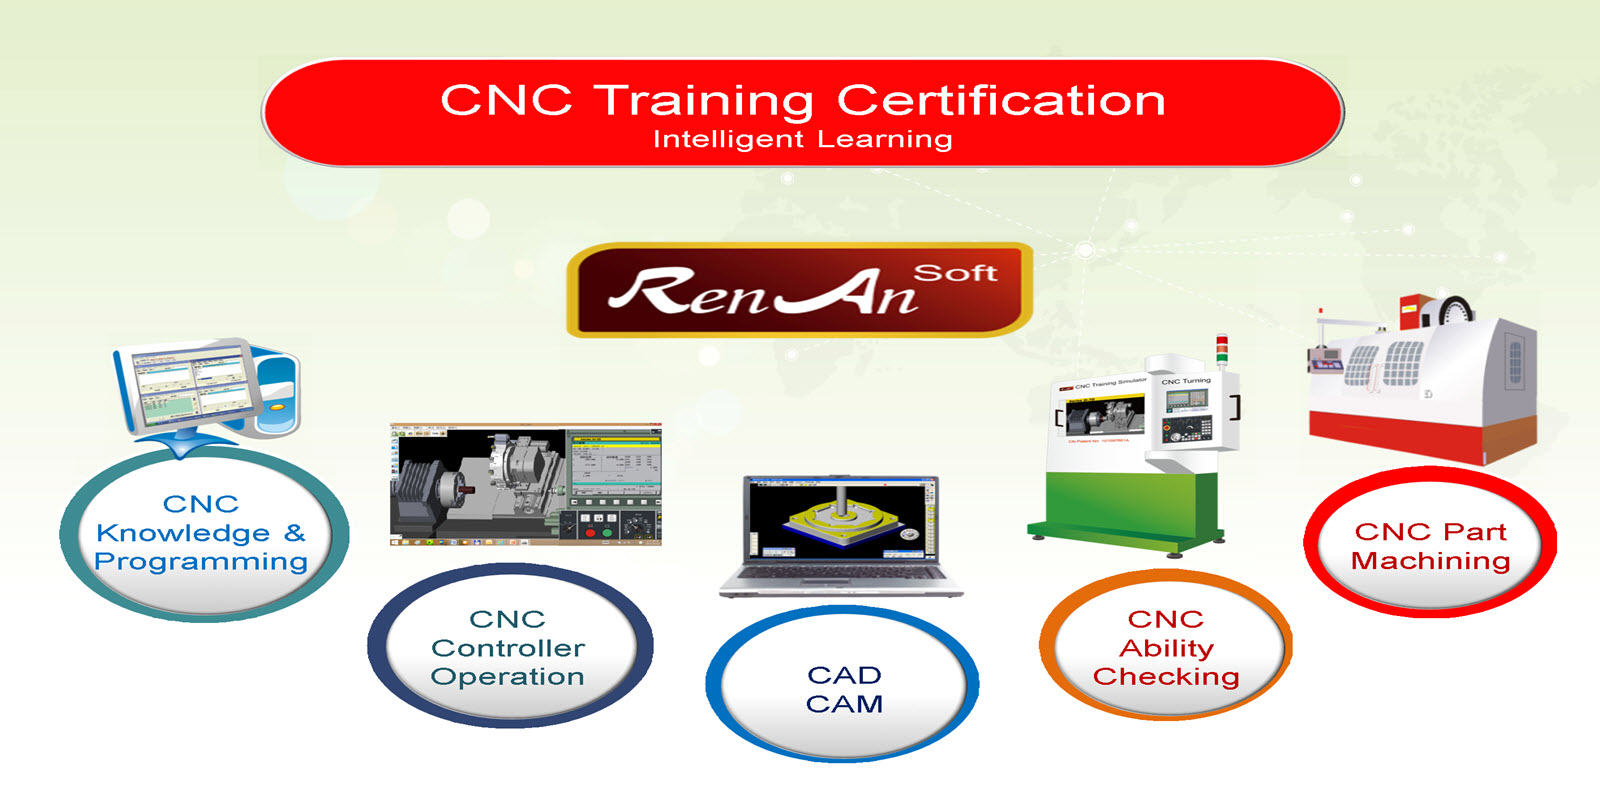 CNC Training Certification